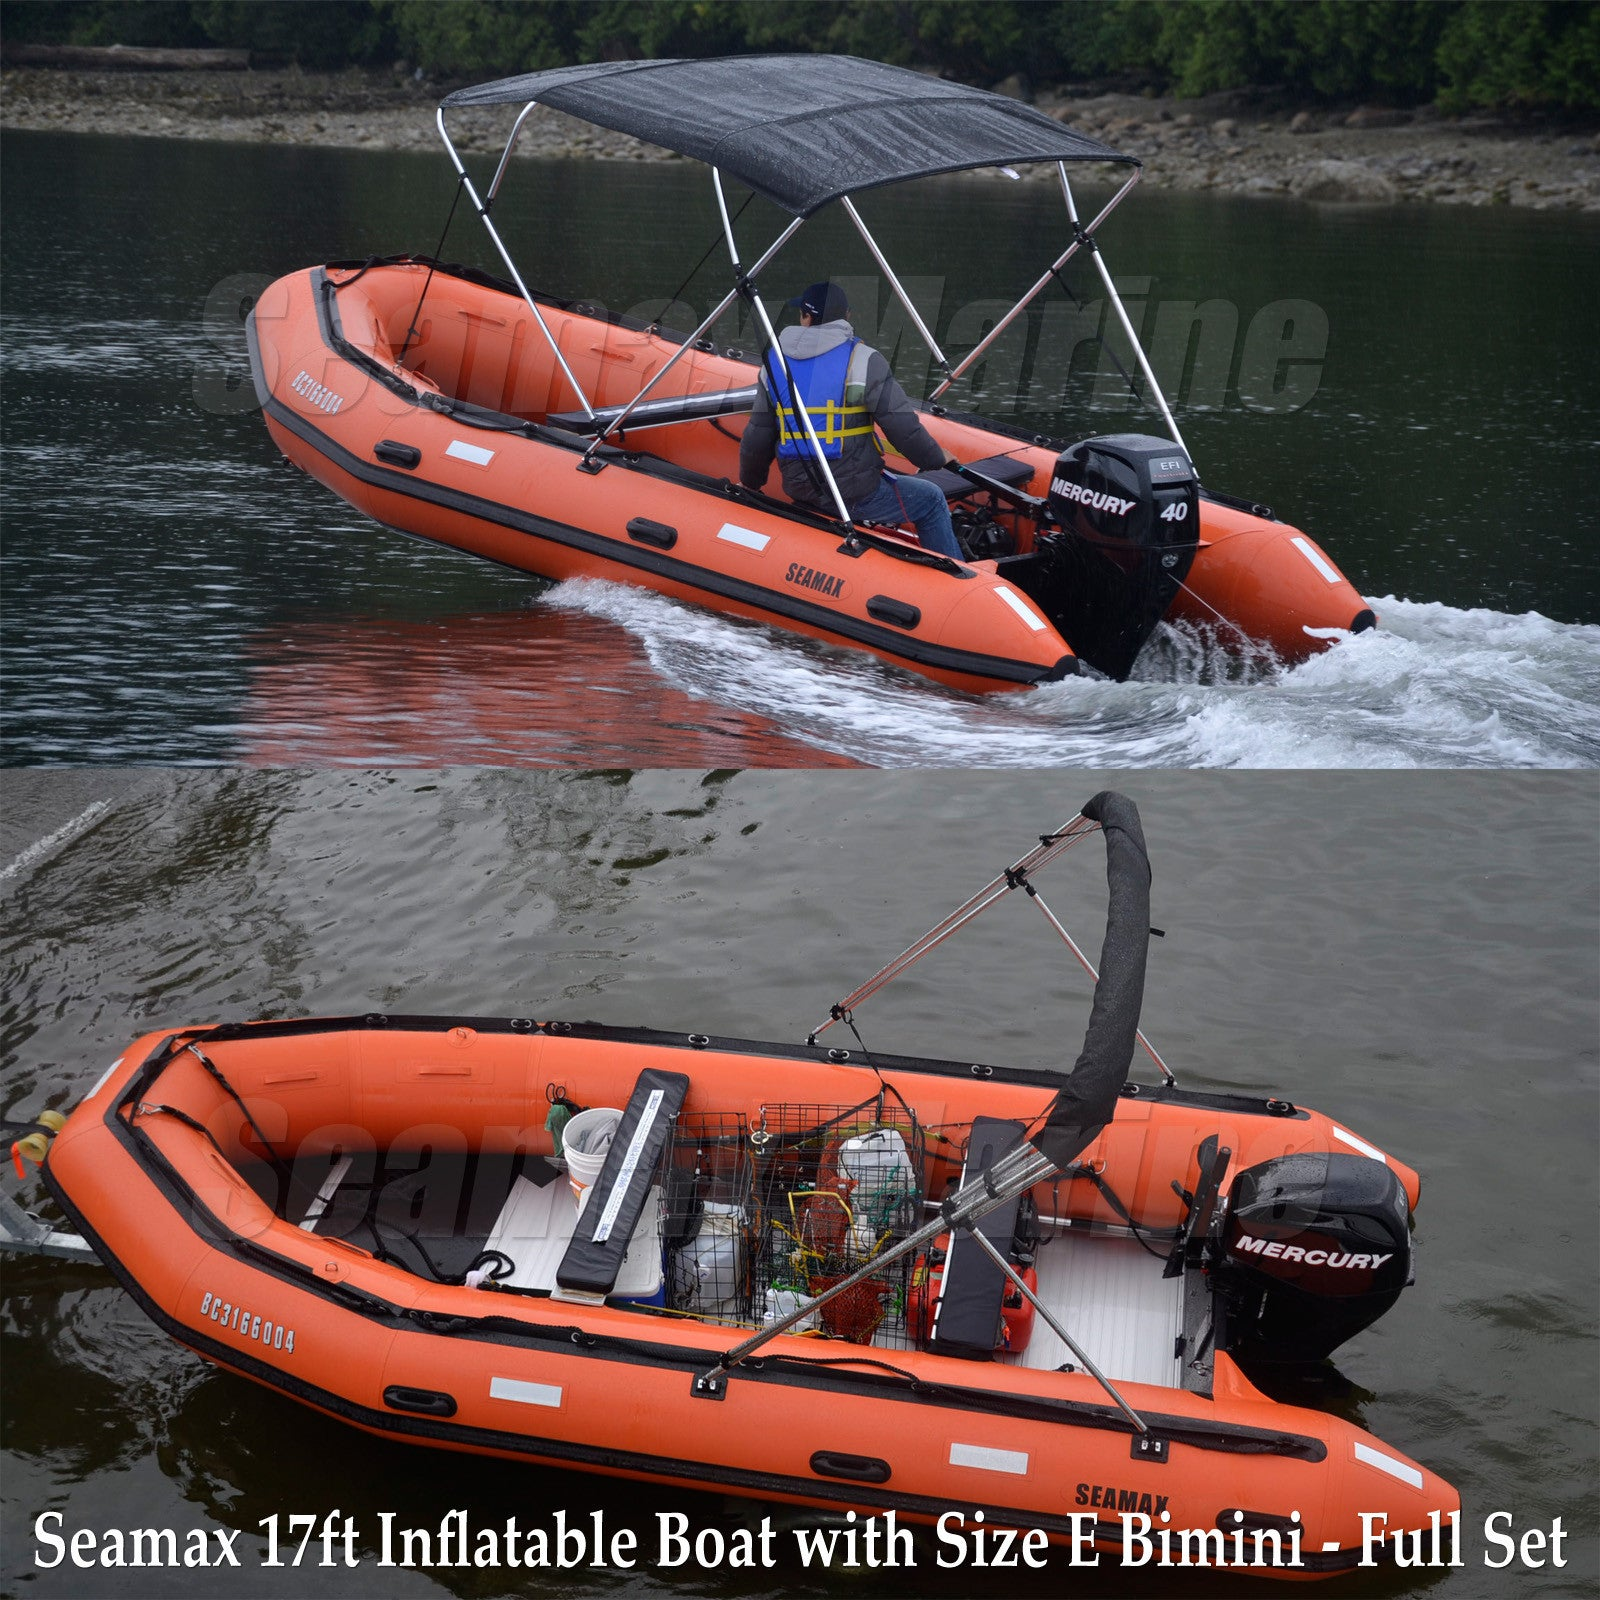 Seamax Developed Bimini Top Pontoon Fitting Kit for Inflatable Boat